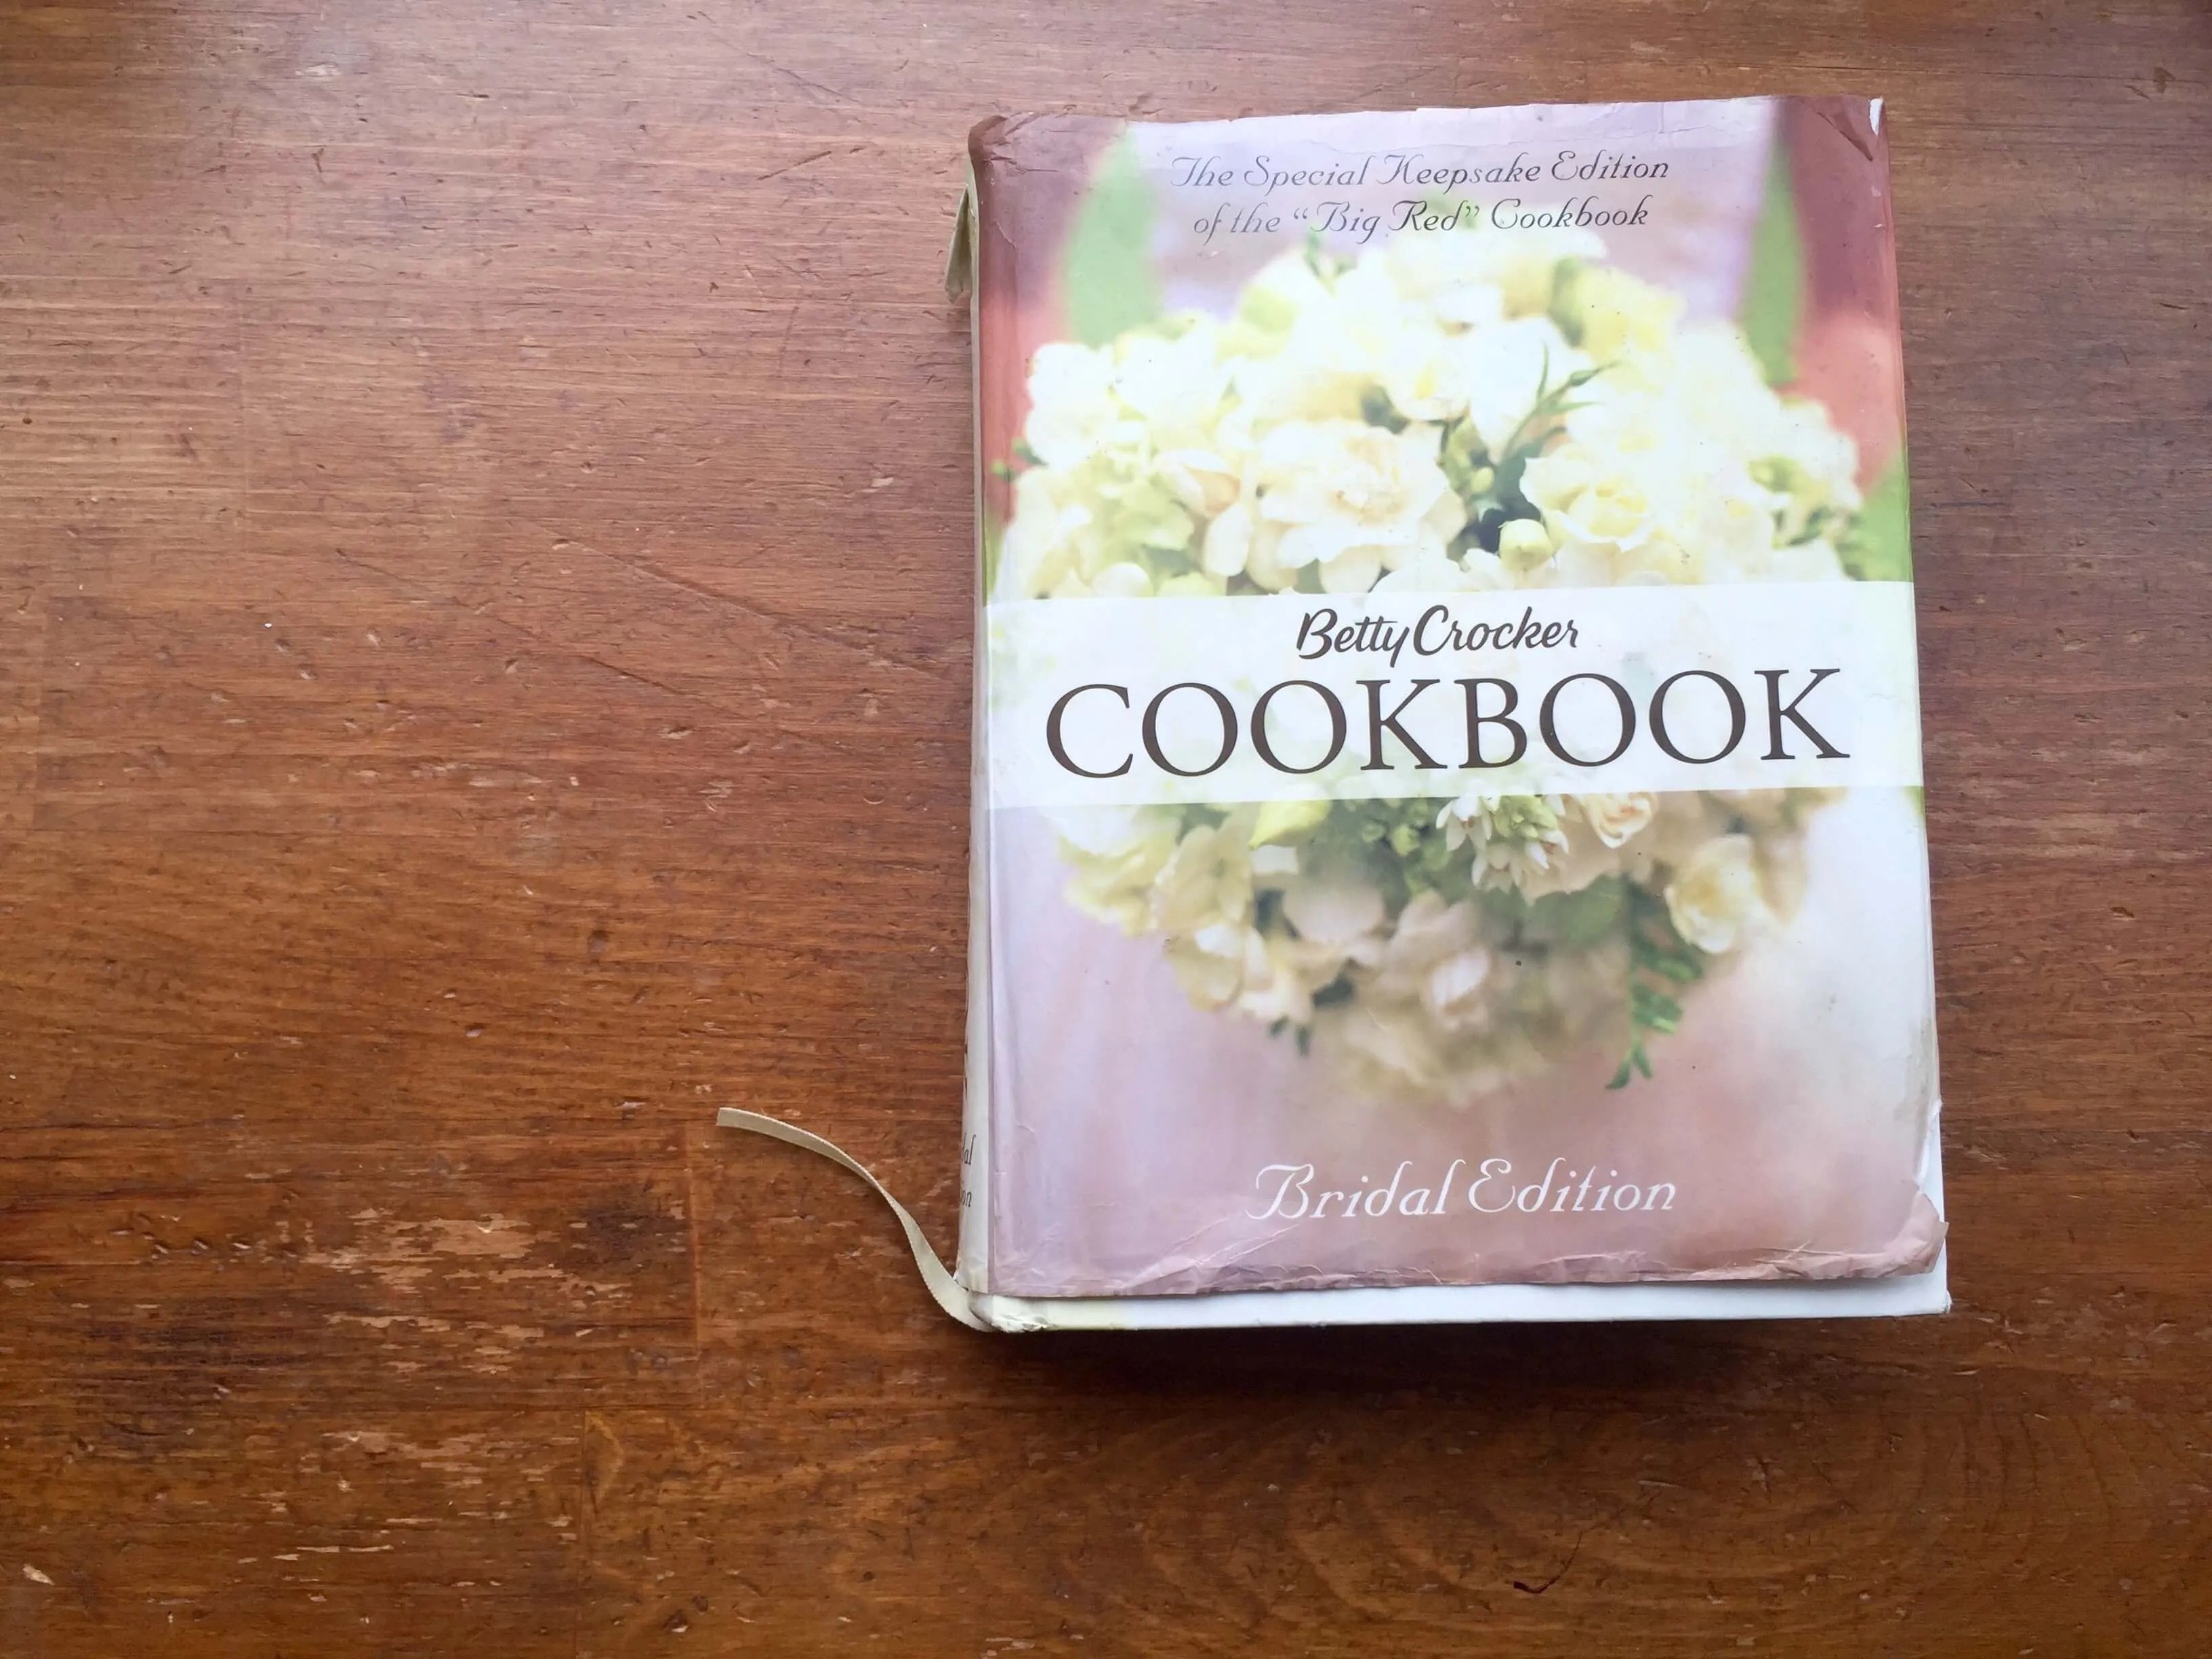 Betty Crocker Cookbook: Teach Yourself How To Cook